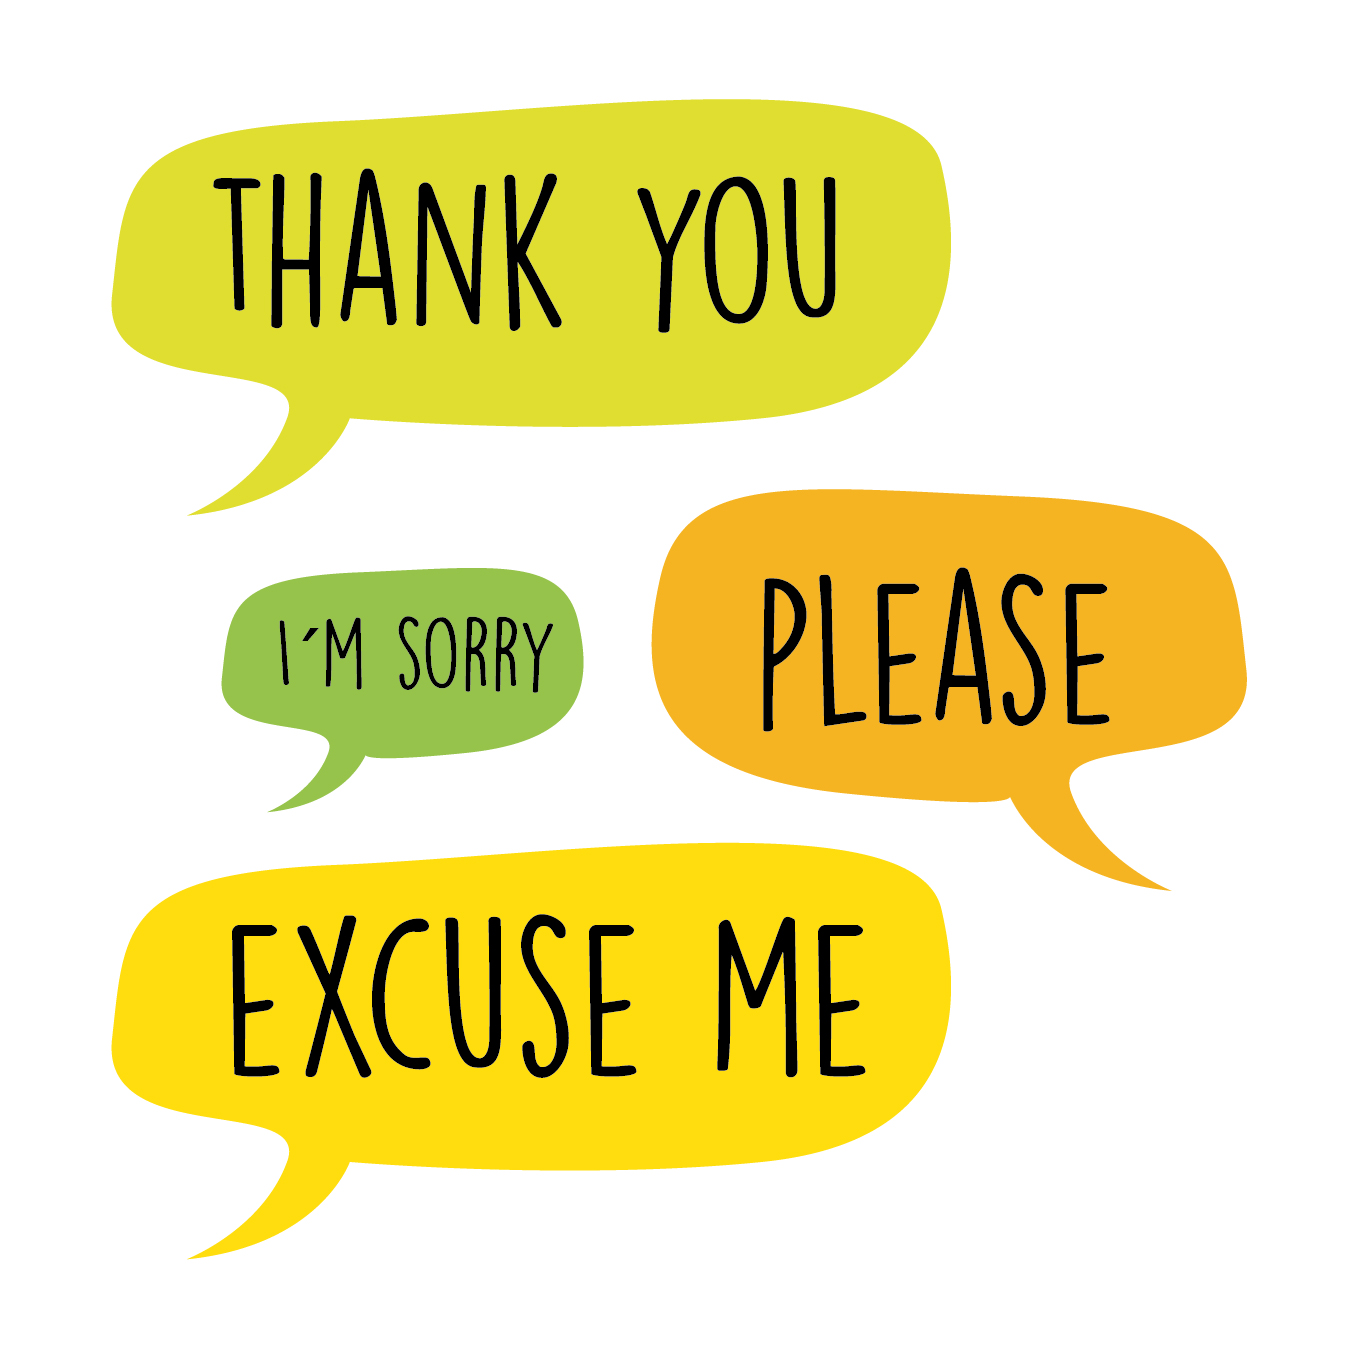 Use kind words clipart png transparent download Writing for Designers › Why Use Manners? Why Be Considerate? png transparent download